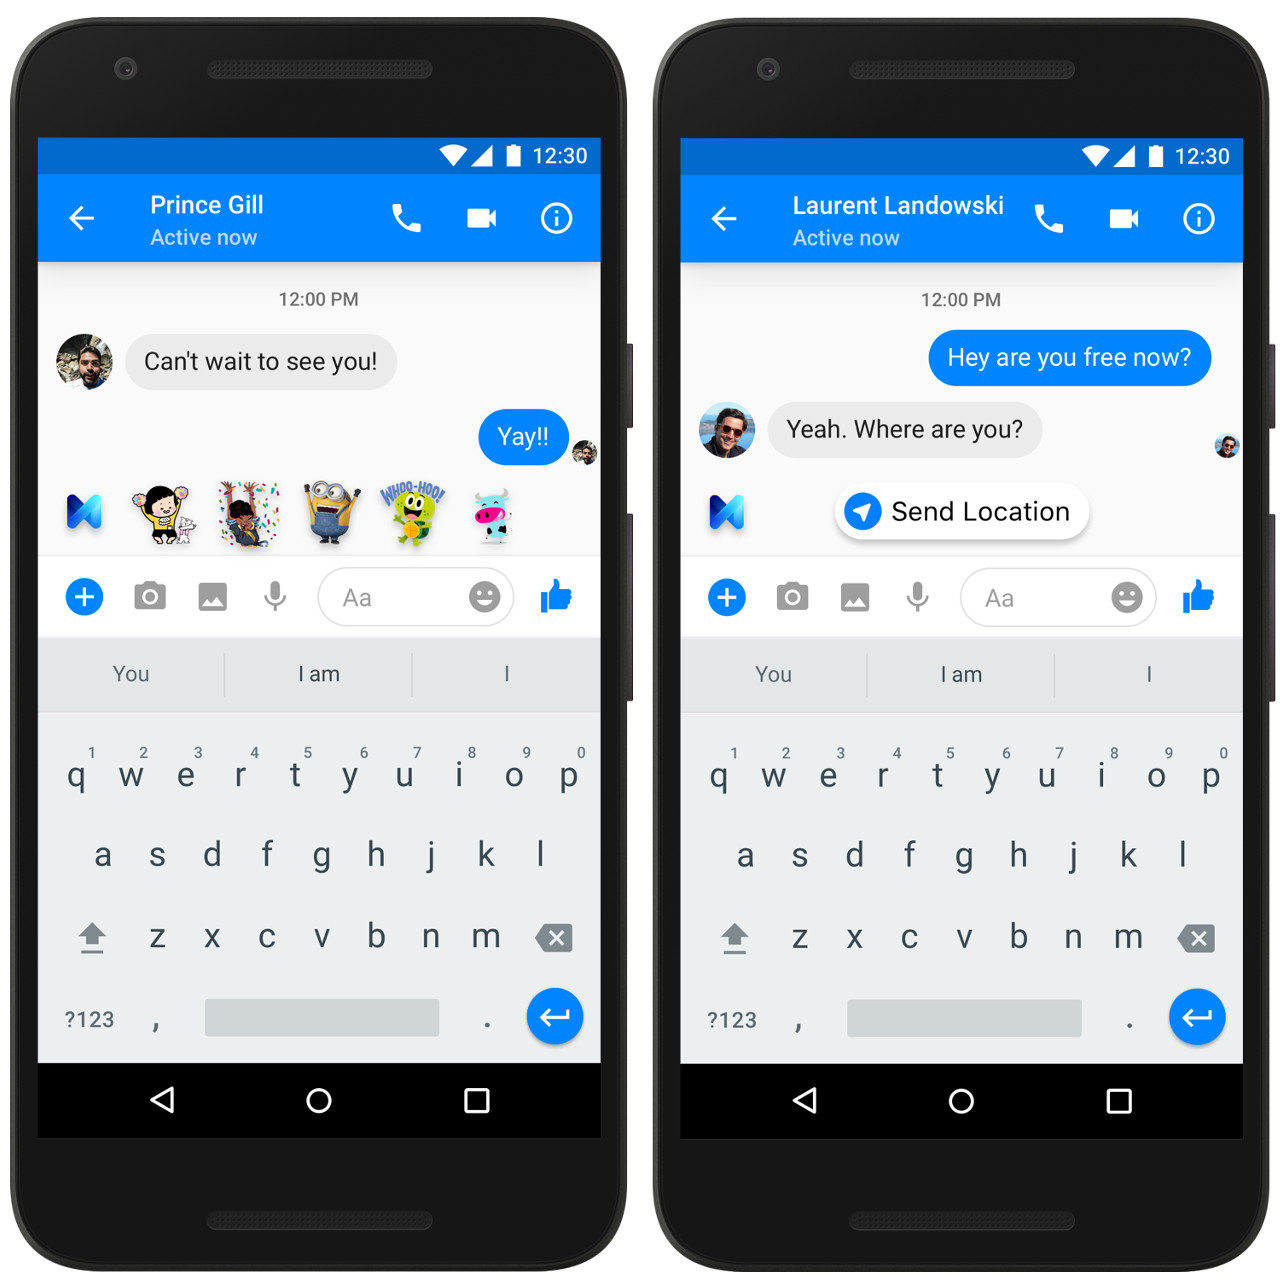 An image showing the M digital assistant suggesting location sharing and stickers